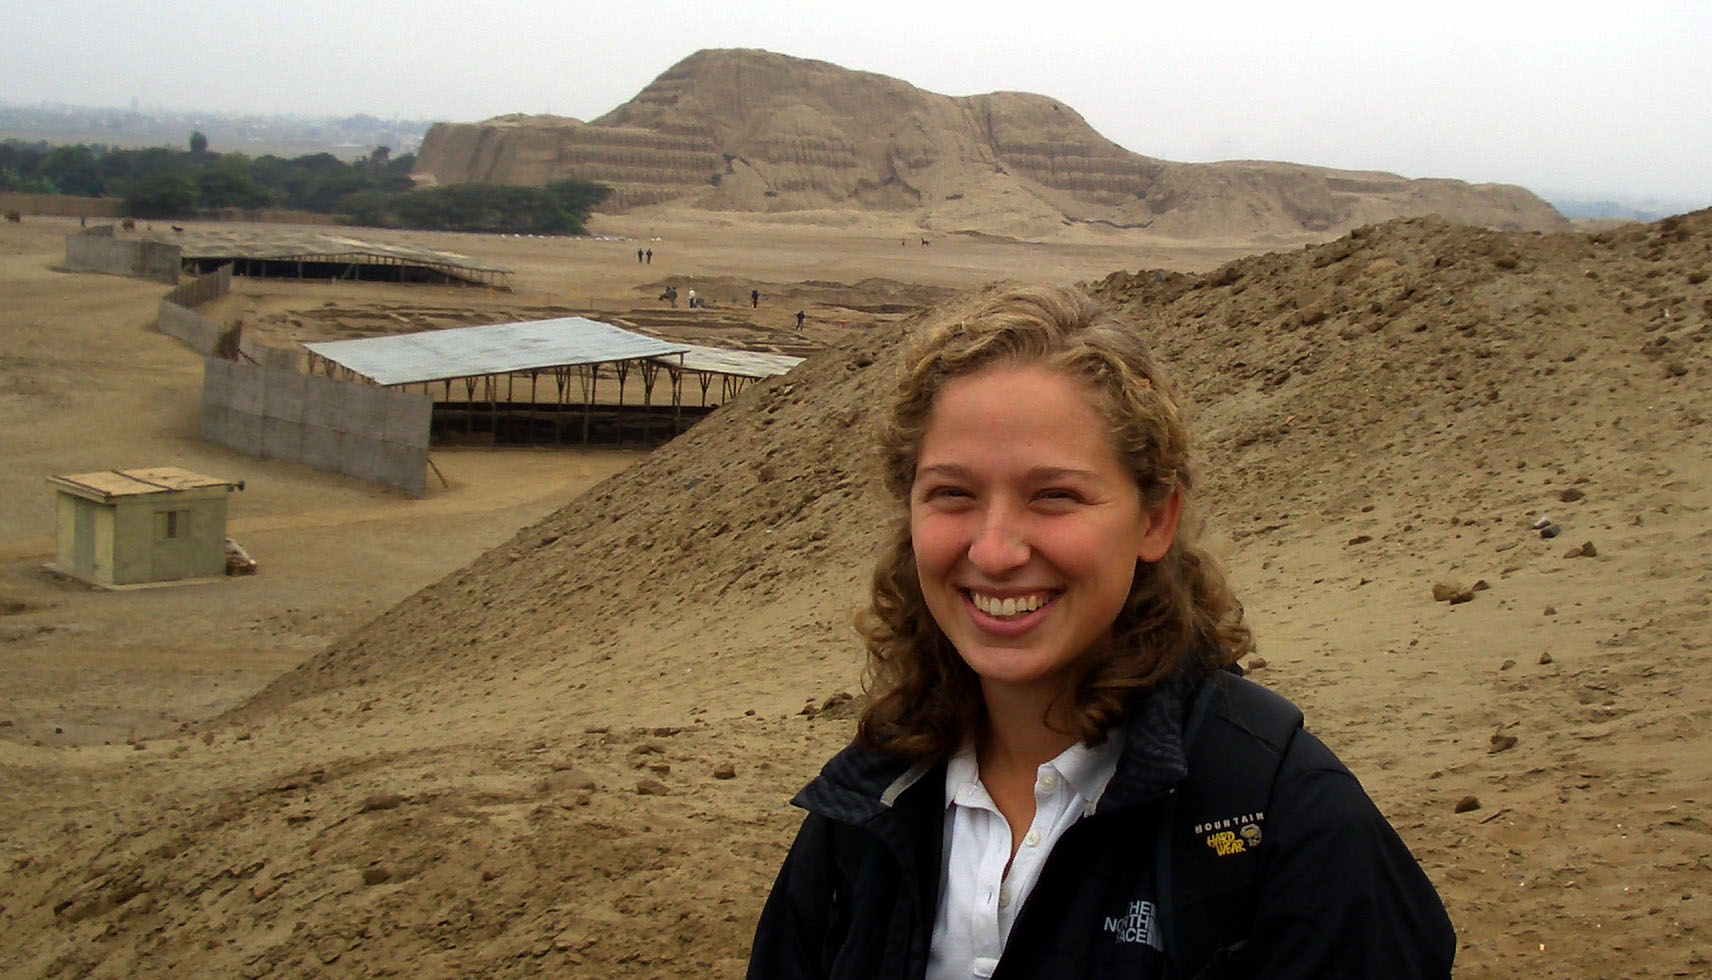 SMU Fulbright Fellow Kylie Quave